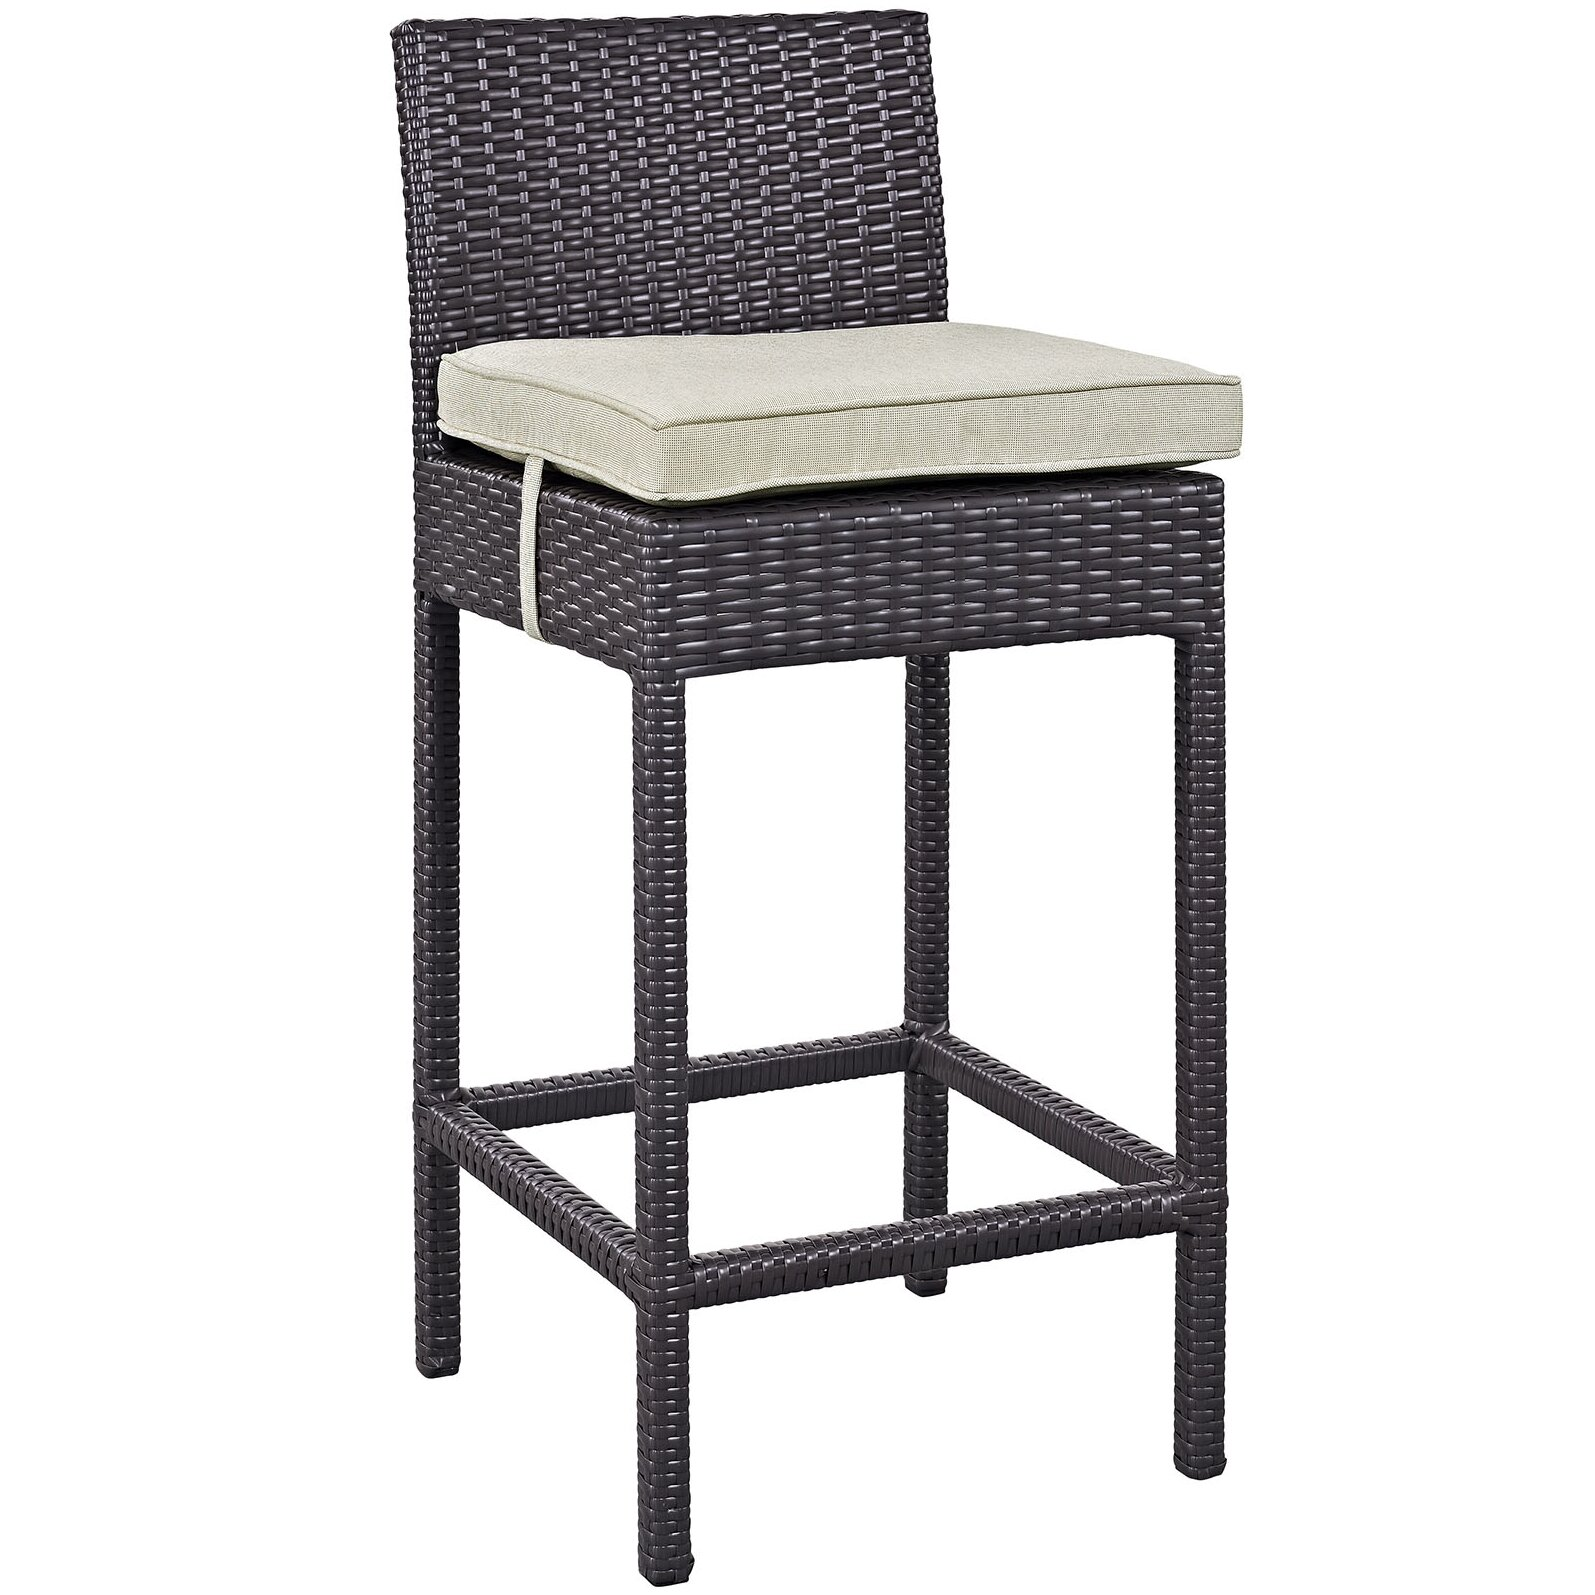 Modway Convene Outdoor Patio Pub Dining Chair with  : Convene 4 Piece Outdoor Patio Pub Set with Cushions EEI 2218 EXP from www.wayfair.com size 1595 x 1595 jpeg 343kB